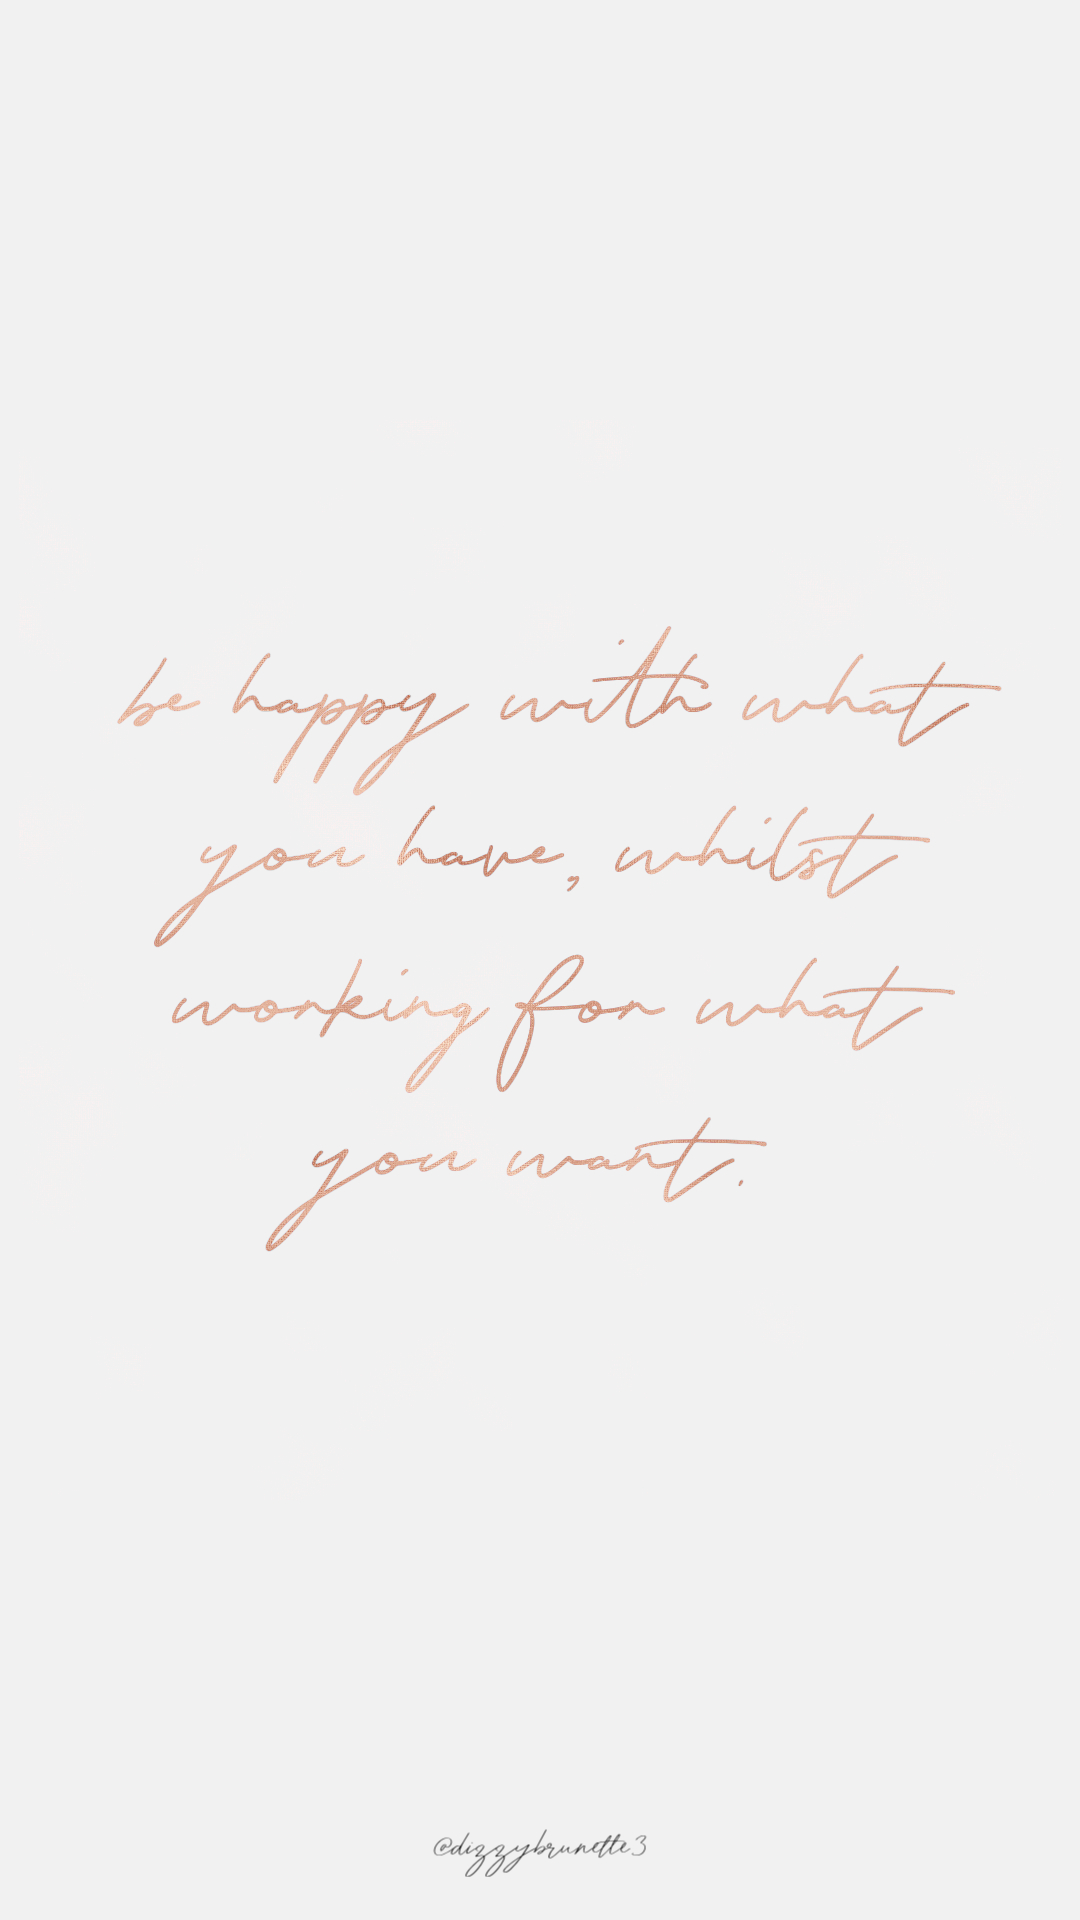 This is such an important motivational quote! Showing gratitude for what you have while goal setting is the key. Perfect quote for anyone with mental illness or anxiety, appreciate and accept where you are in life while focusing on the future.